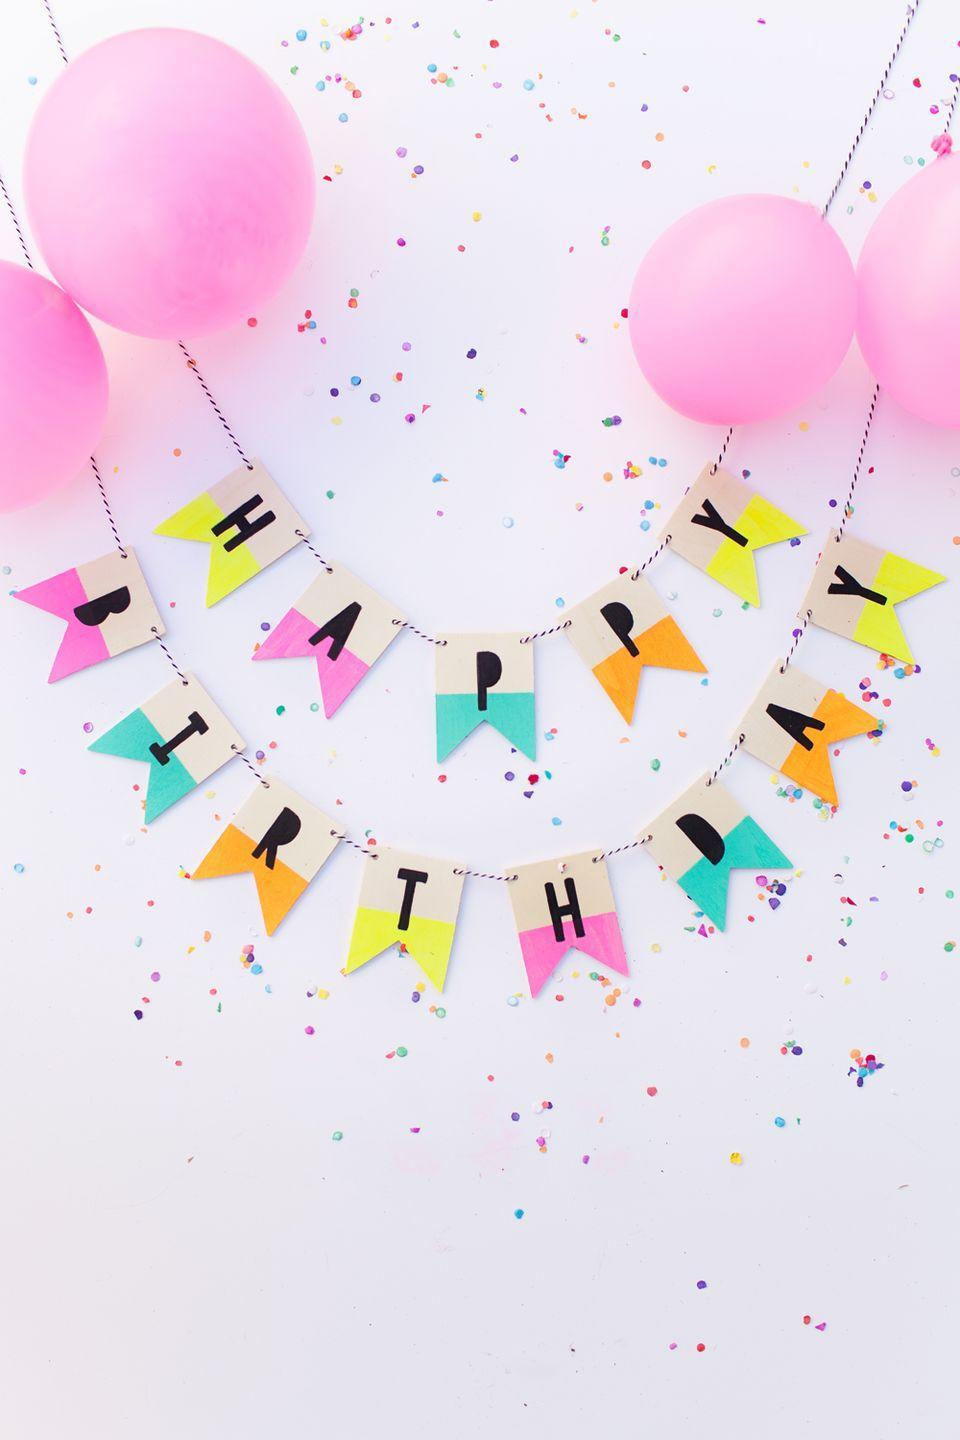 """<p>Rather than buying a banner from the store, you can make your own happy birthday sign with twine, acrylic paint, and thin wood slabs. </p><p><strong><em><a href=""""https://tellloveandparty.com/2015/06/wood-birthday-banner.html"""" rel=""""nofollow noopener"""" target=""""_blank"""" data-ylk=""""slk:Get the tutorial at Tell Love and Party"""" class=""""link rapid-noclick-resp"""">Get the tutorial at Tell Love and Party</a>. </em></strong></p><p><a class=""""link rapid-noclick-resp"""" href=""""https://www.amazon.com/Unfinished-Painting-Supplies-Engraving-Decorations/dp/B08BLFMFGB?tag=syn-yahoo-20&ascsubtag=%5Bartid%7C10070.g.37055923%5Bsrc%7Cyahoo-us"""" rel=""""nofollow noopener"""" target=""""_blank"""" data-ylk=""""slk:SHOP WOOD BANNER PIECES"""">SHOP WOOD BANNER PIECES</a></p>"""